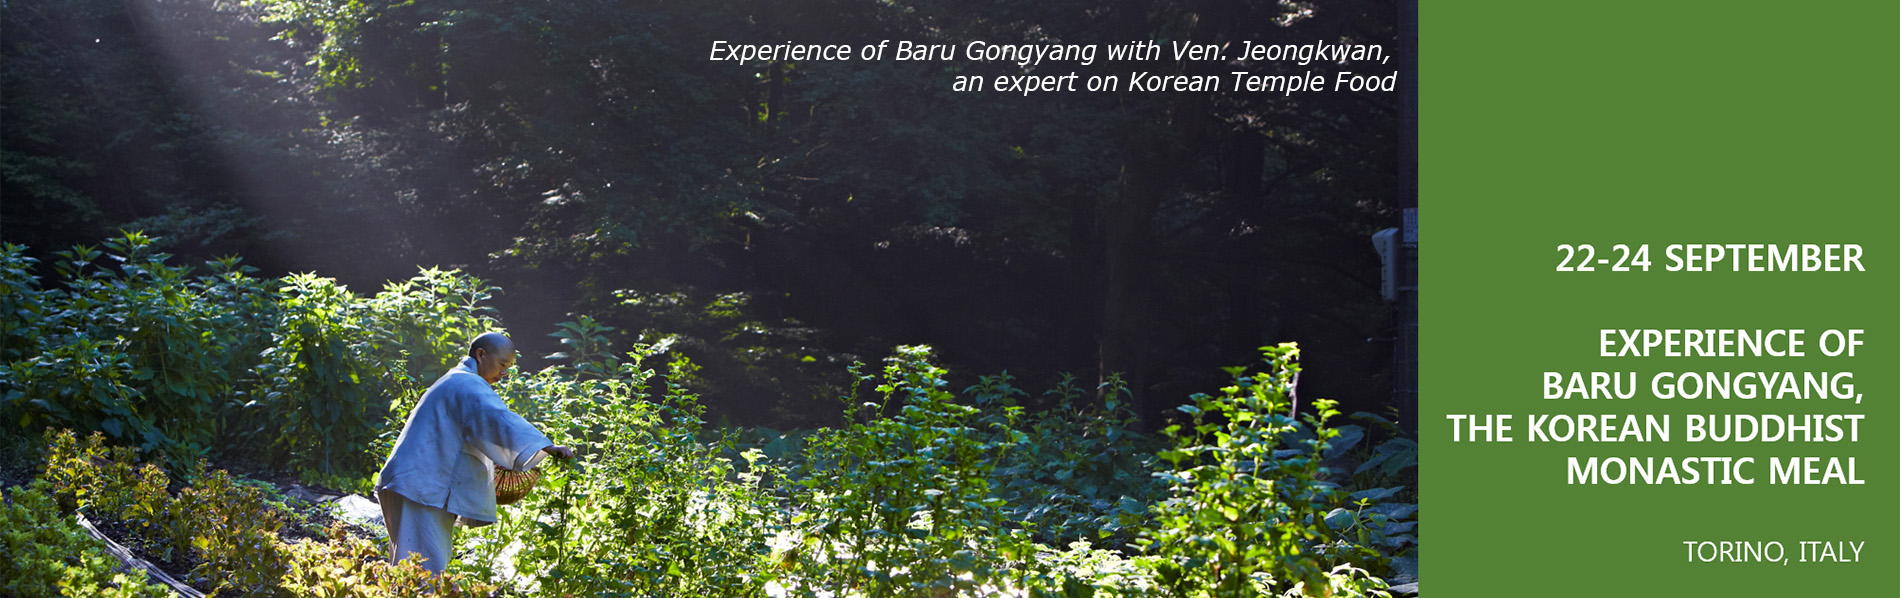 The Baru Gongyang experience with Buddhist nun Venerable Jeong Kwan